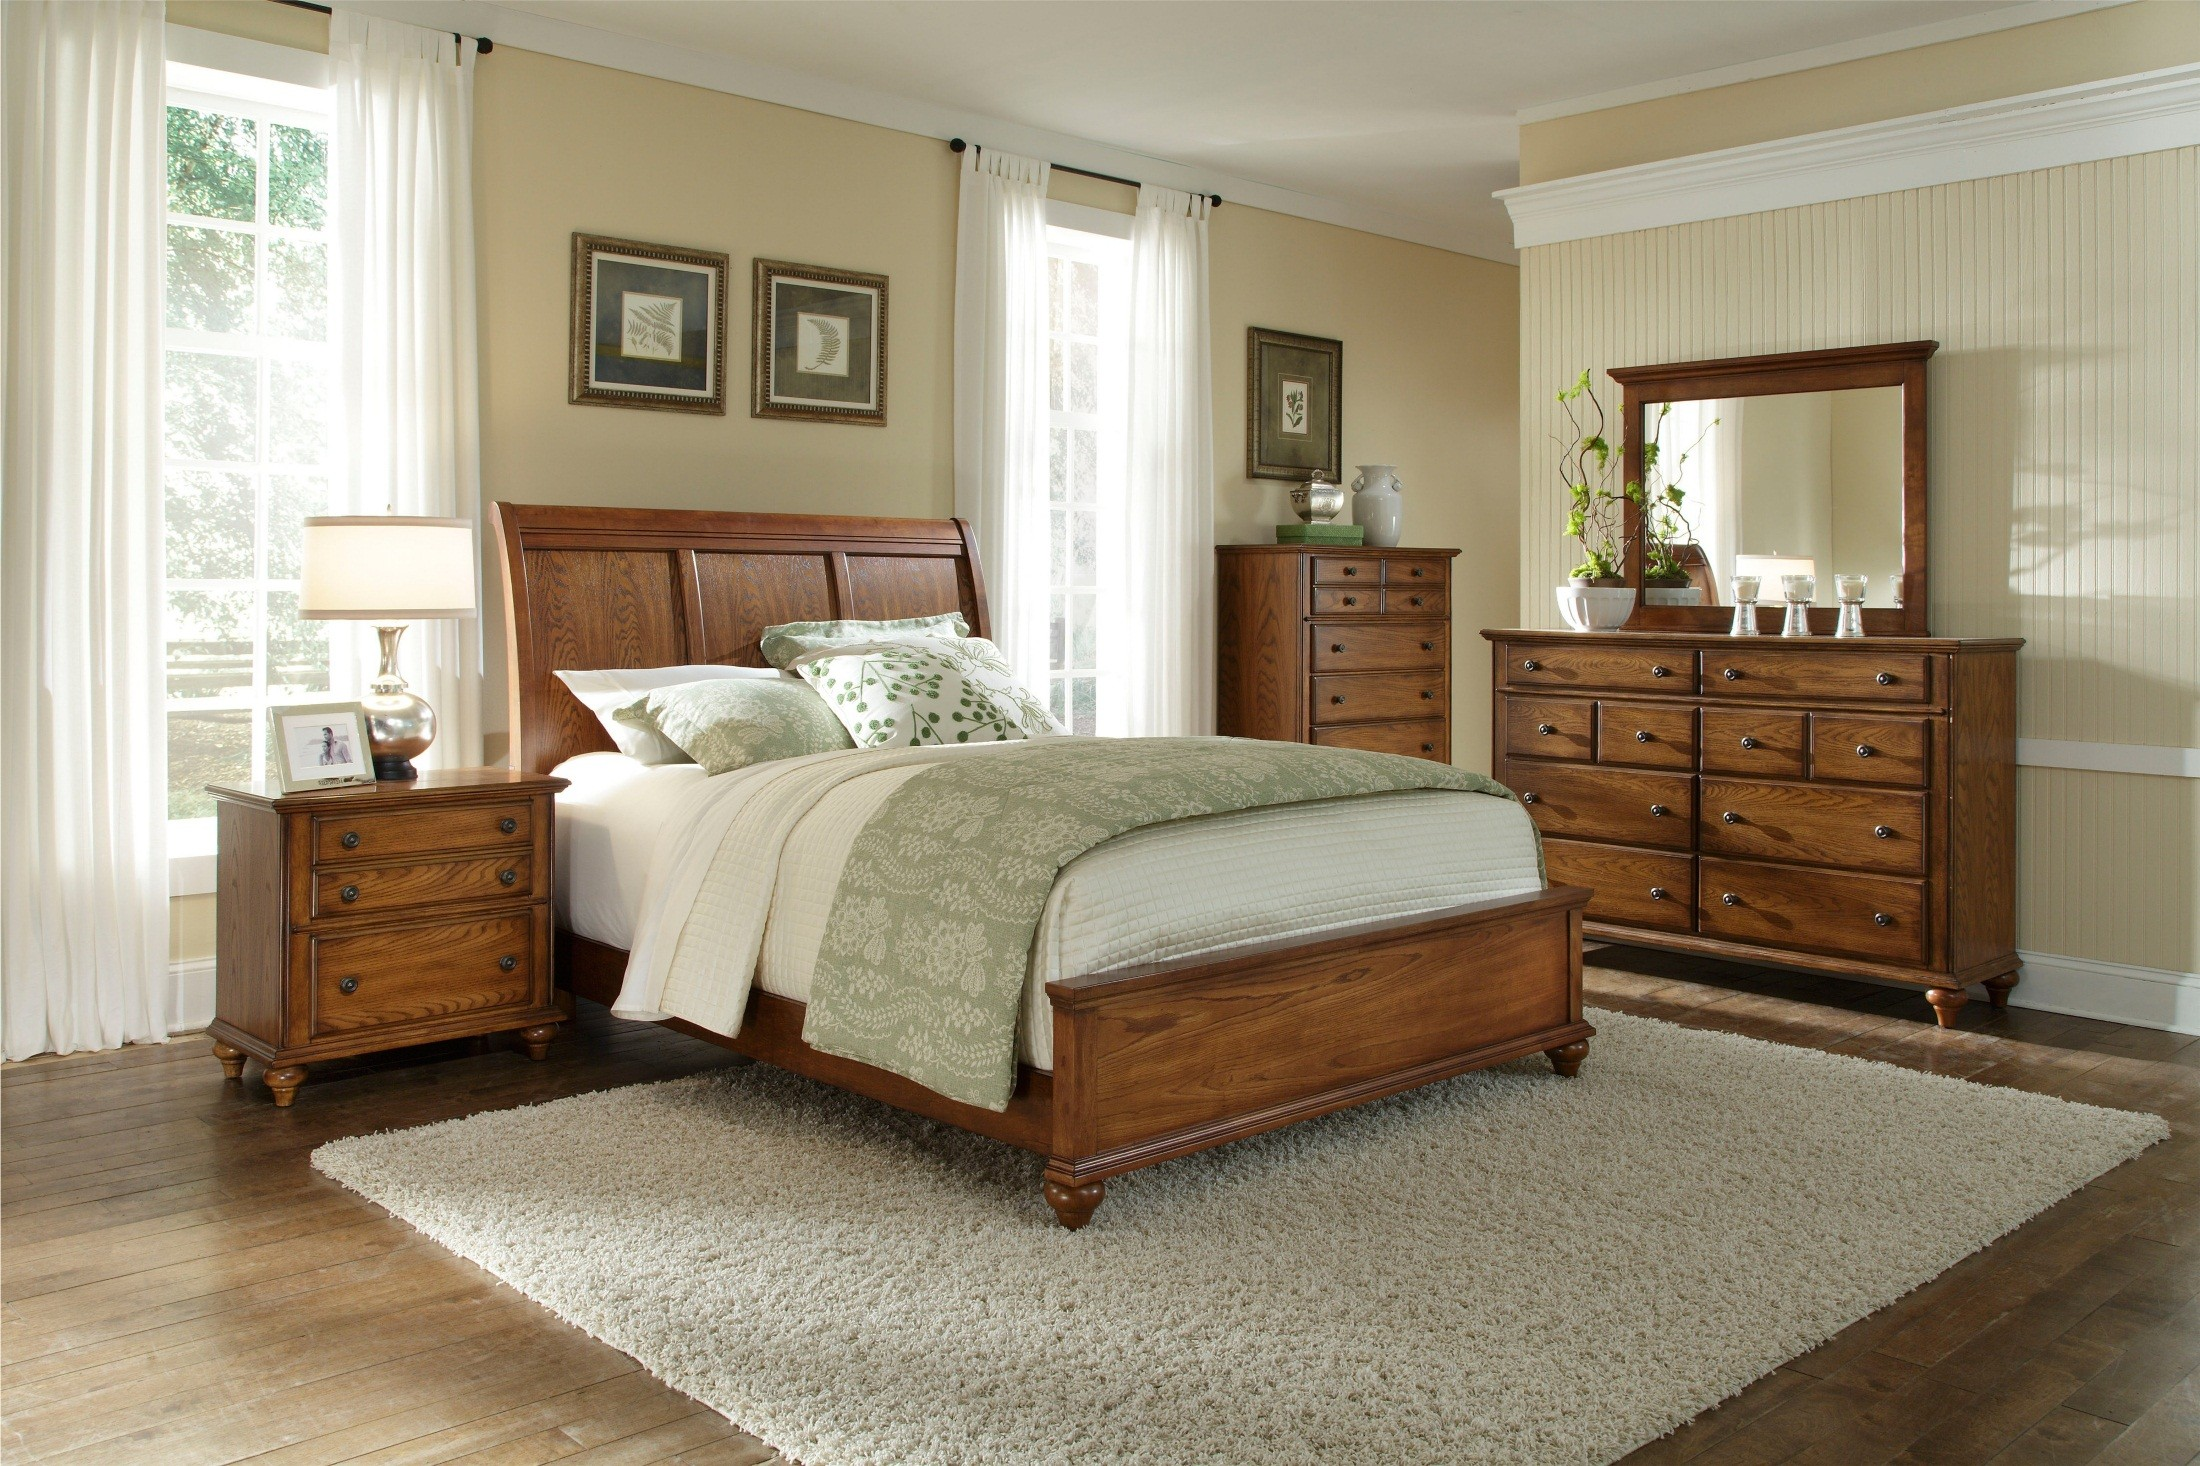 Hayden place oak sleigh bedroom set 4645 270 271 450 - Broyhill hayden place bedroom set ...